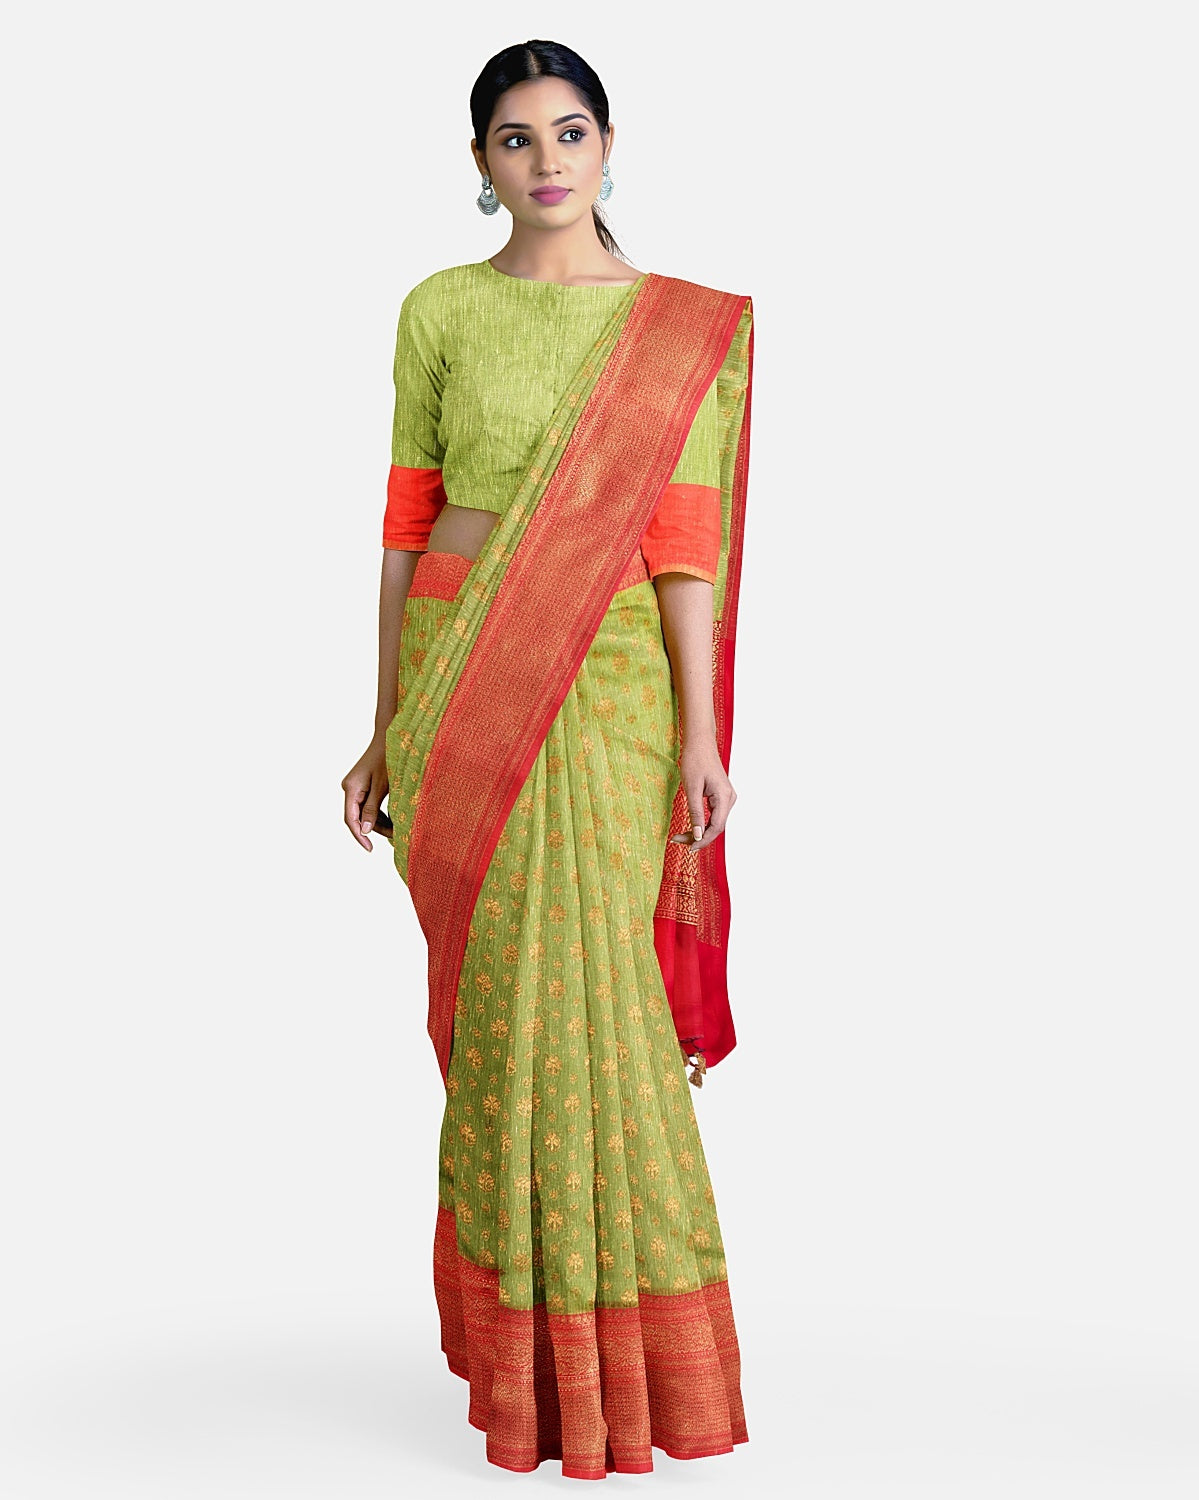 Leaf green and red khadi linen